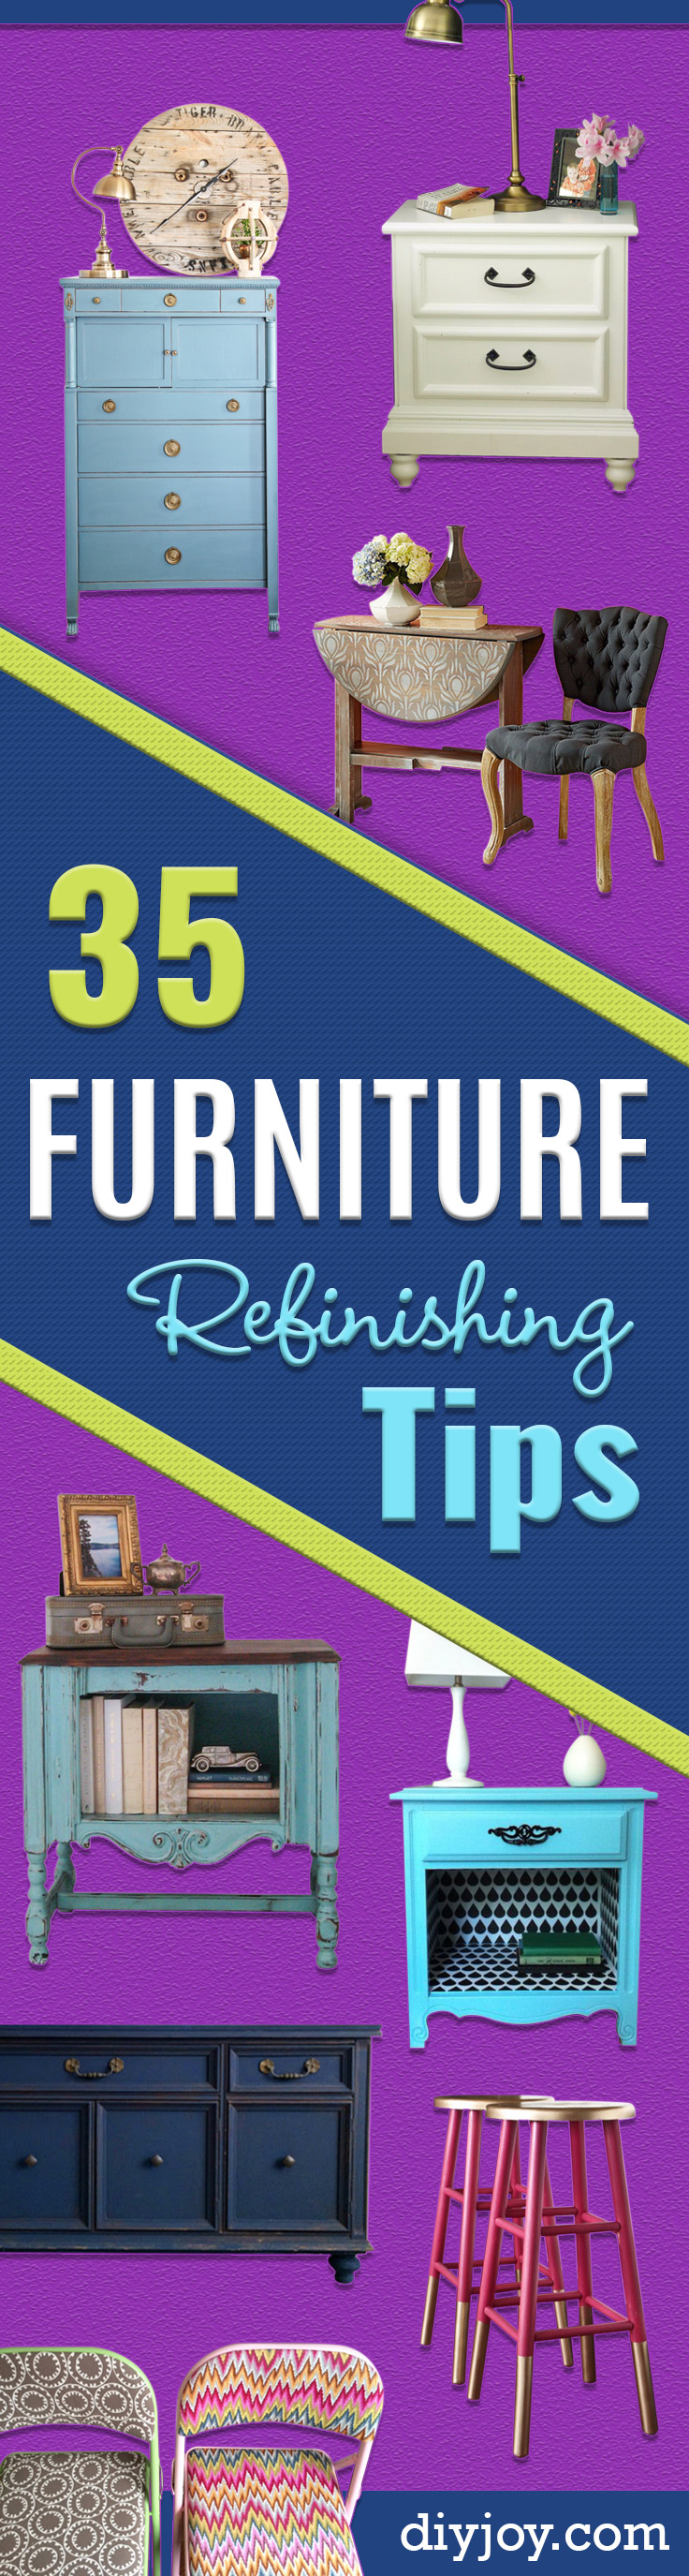 DIY Furniture Refinishing Tips - Creative Ways to Redo Furniture With Paint and DIY Project Techniques - Awesome Dressers, Kitchen Cabinets, Tables and Beds - Rustic and Distressed Looks Made Easy With Step by Step Tutorials - How To Make Creative Home Decor On A Budget http://diyjoy.com/furniture-refinishing-tips